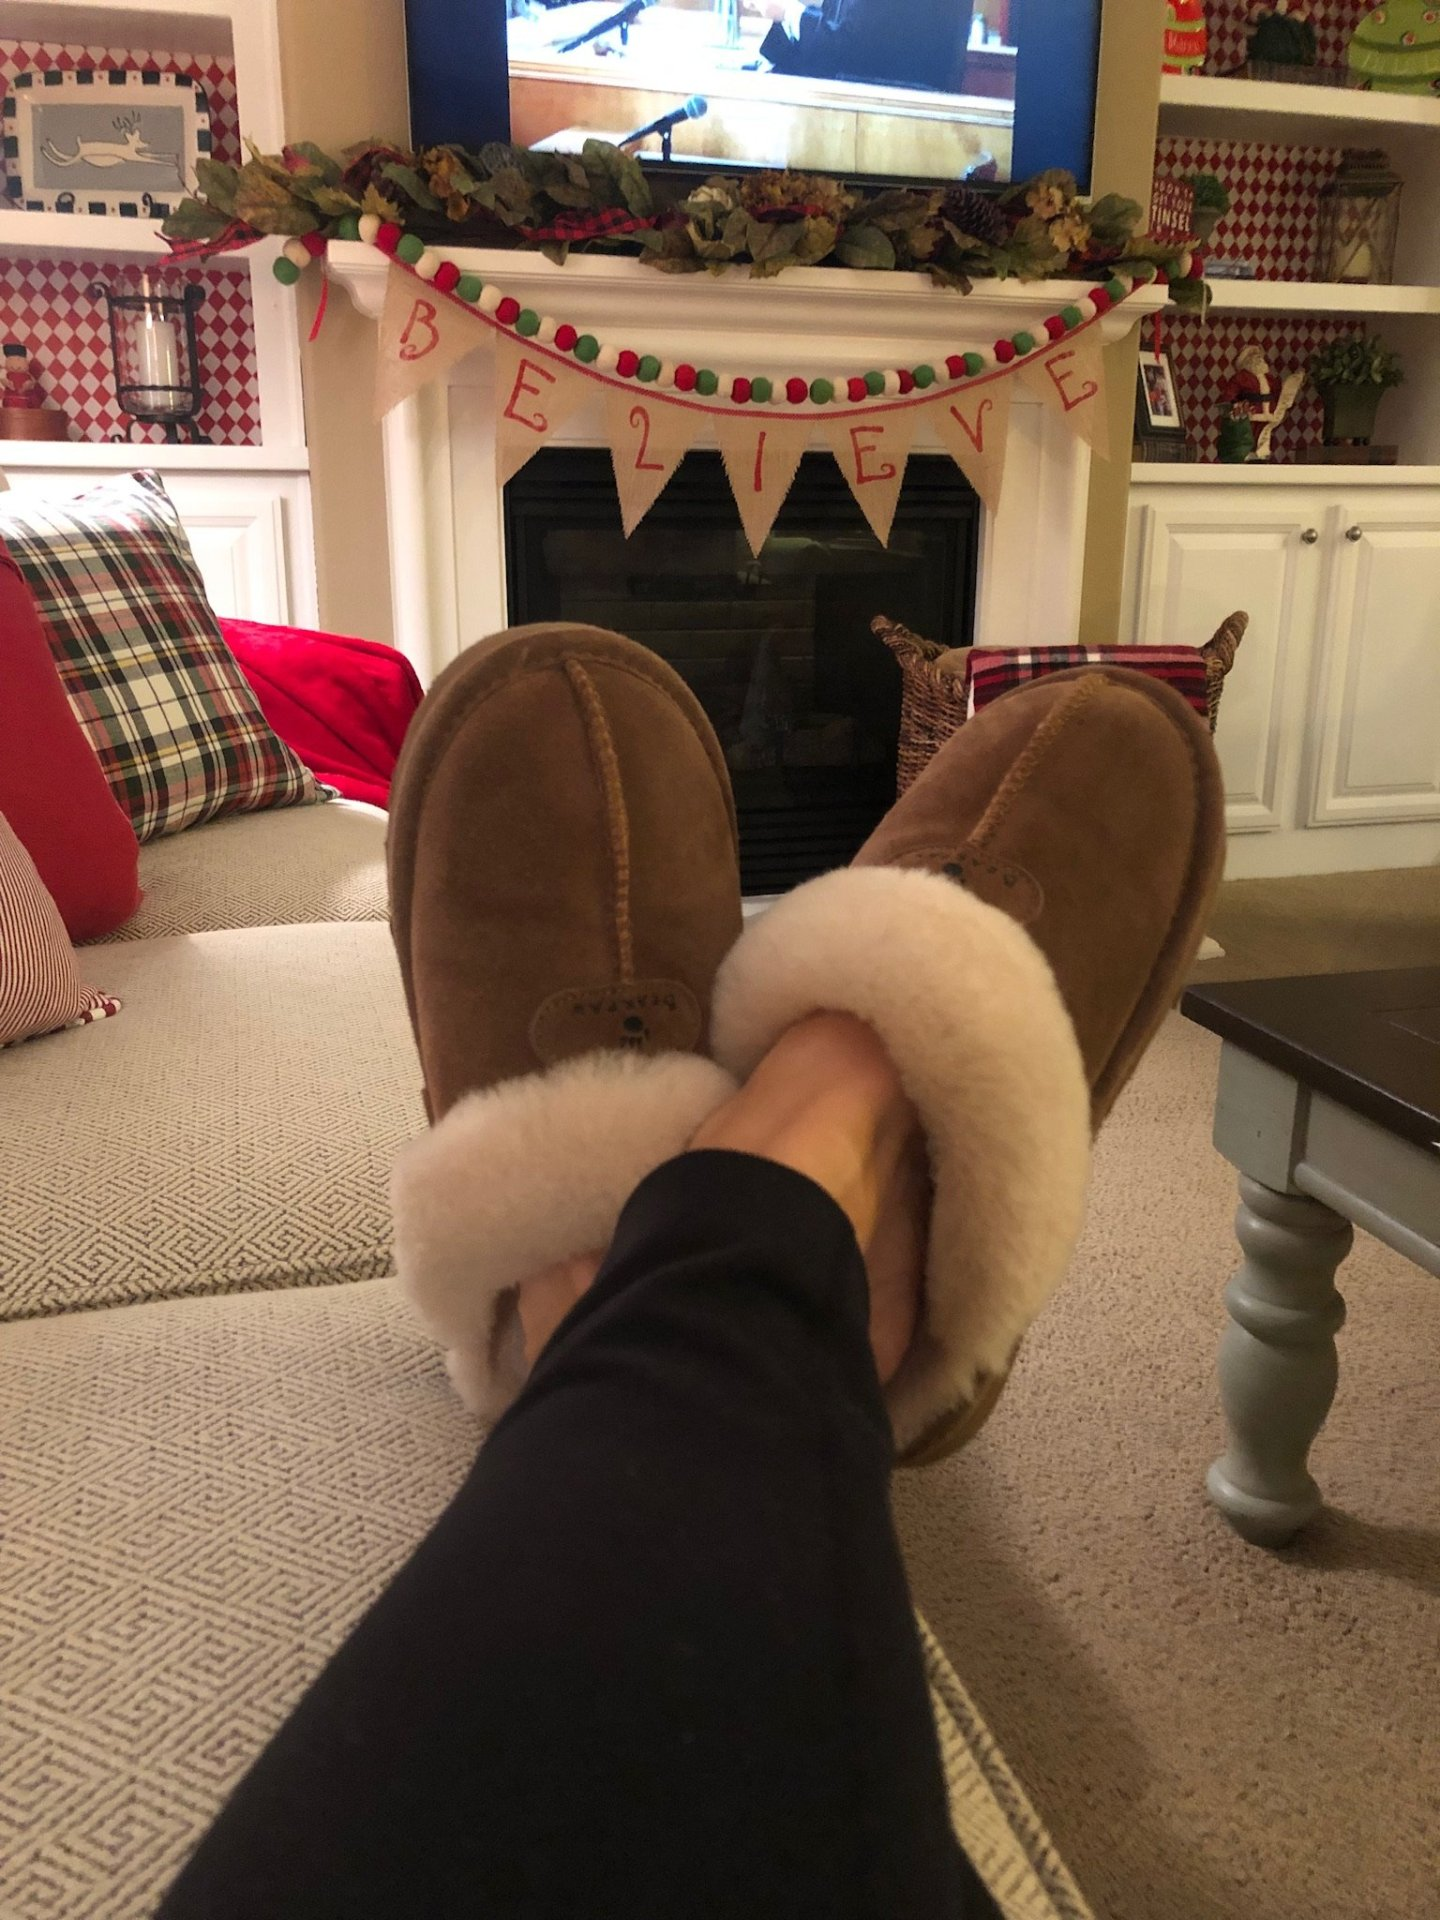 Bearpaw slippers, what I'm loving lately